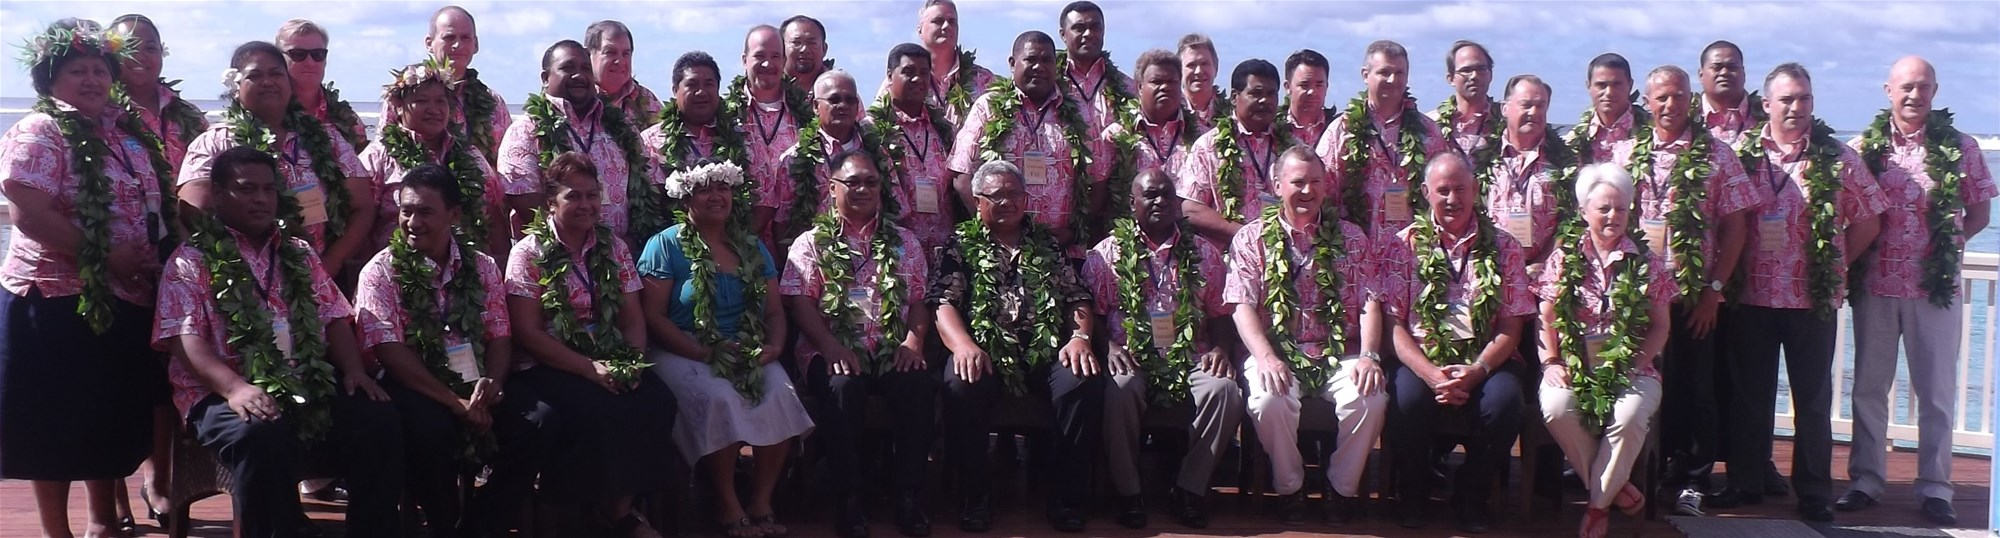 Delegates at the 2012 Annual Pacific Immigration Directors' Conference that was held in Rarotonga, Cook Islands.